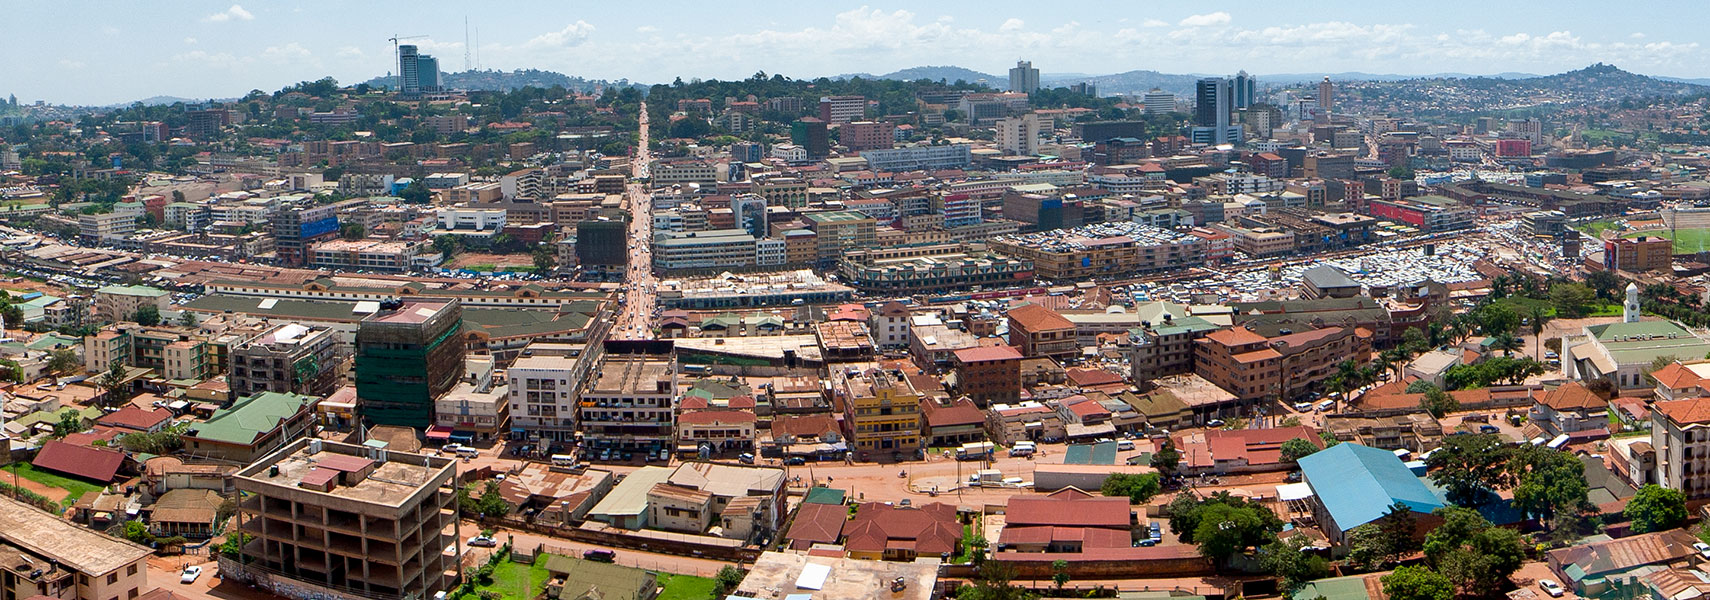 Kampala Uganda Map Google Map of the City of Kampala, Uganda   Nations Online Project